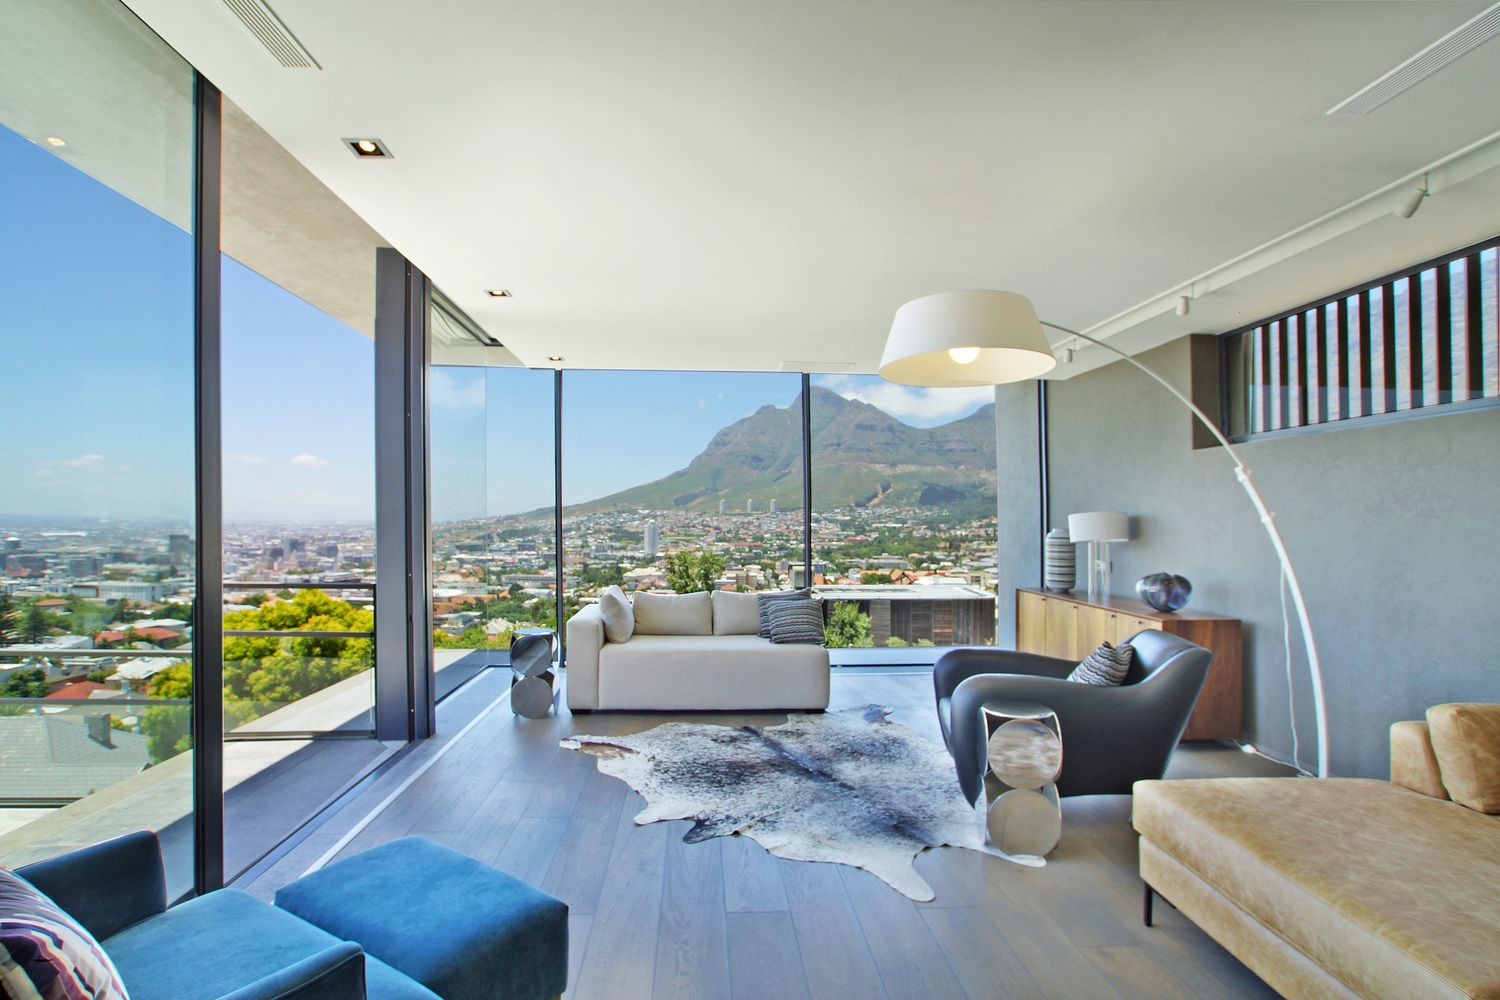 Stylish New Villa in Cape Town feature on Passage to